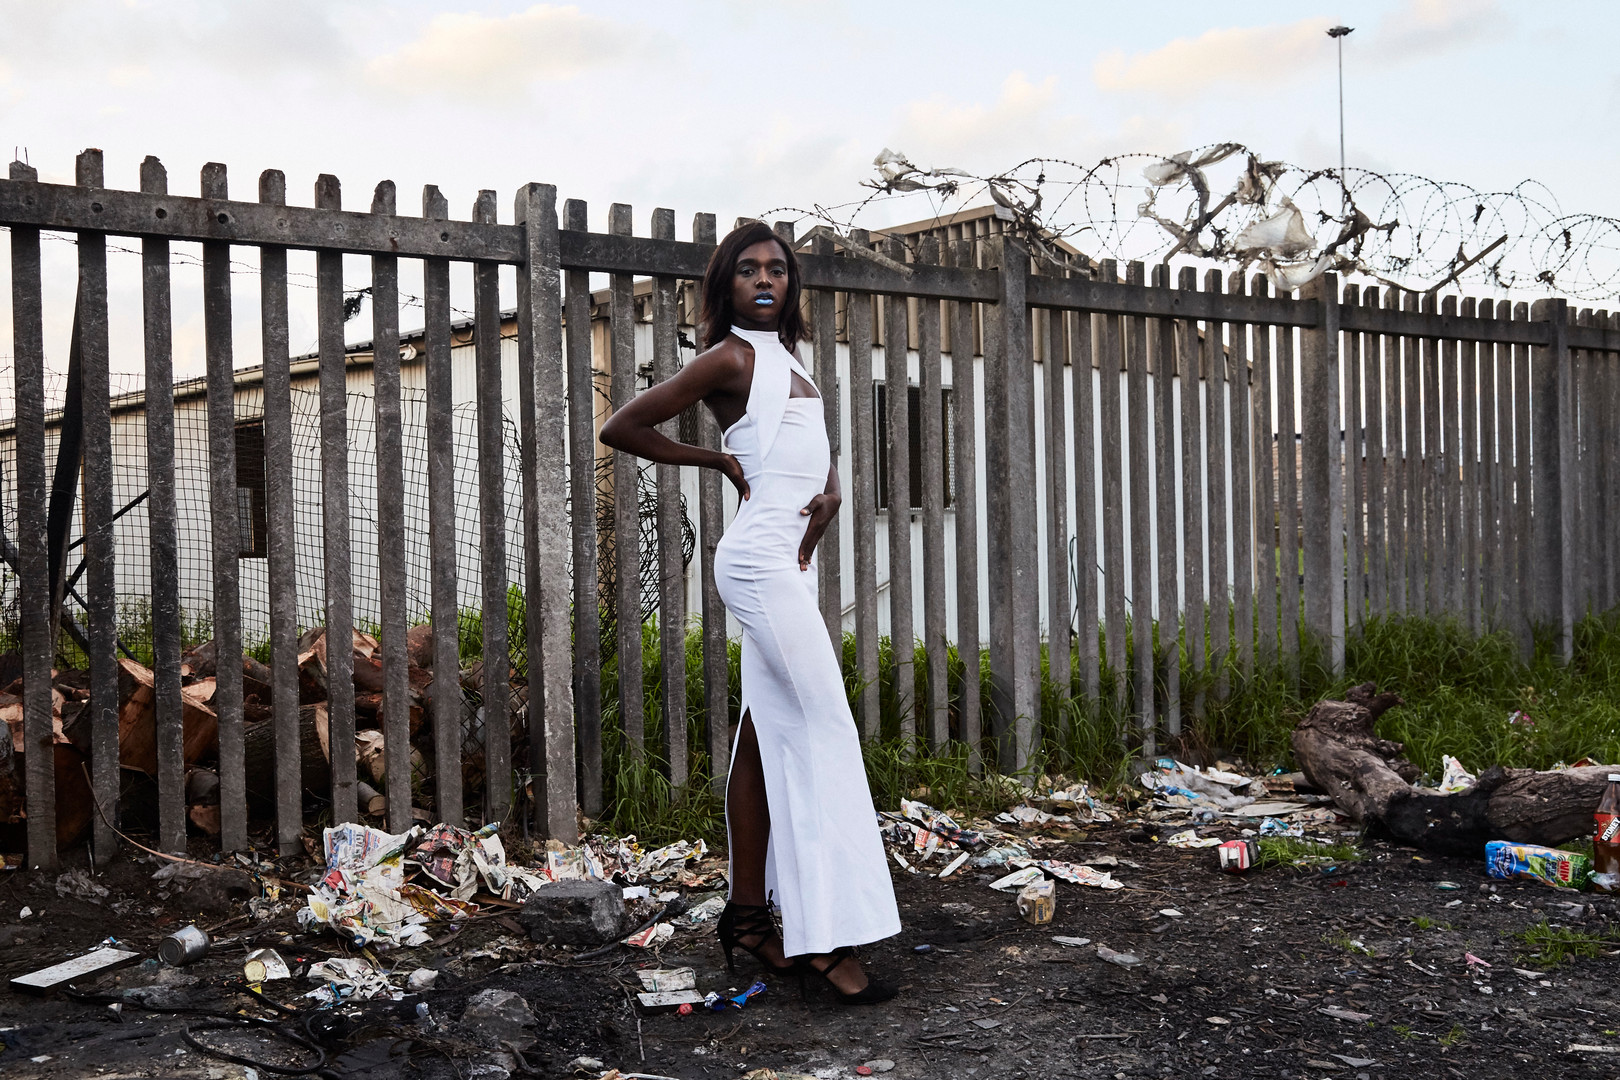 "Liyana Arianna Madikizela, who graduated from high school in 2019, is a drag artist from Kayamandi, a township outside the university town of Stellenbosch. Madikizela wanted her portrait to challenge traditional gender roles. ""I have decided to be myself. I am a gender non-conforming body and I want to be a role model to the future generations of queers to come. I want to become the role model I never saw in the streets of Kayamandi. Living in a township has taught me to be strong and strive. I have dealt with the stigma and hate, and now am stronger. "" Aug. 4, 2019."